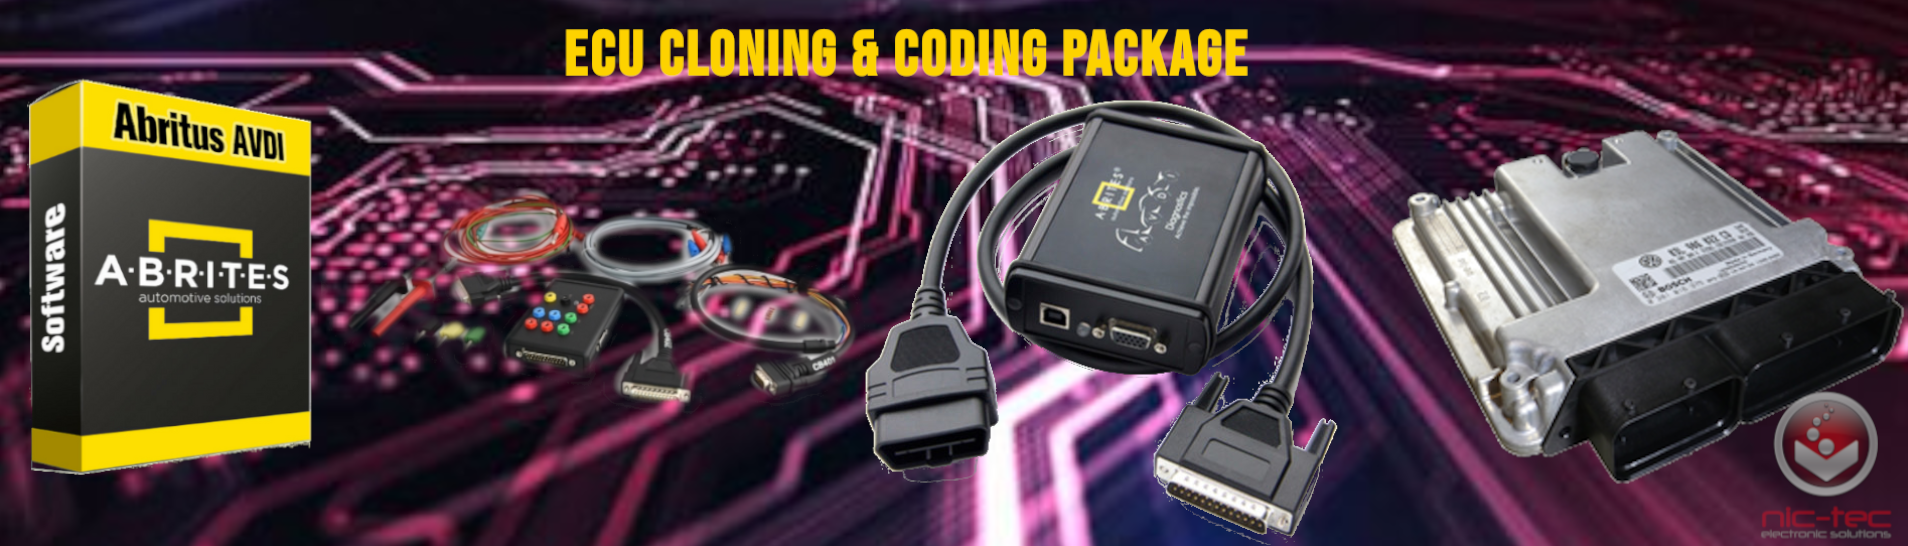 ECU DECODING AND PROGRAMMING PACKAGE